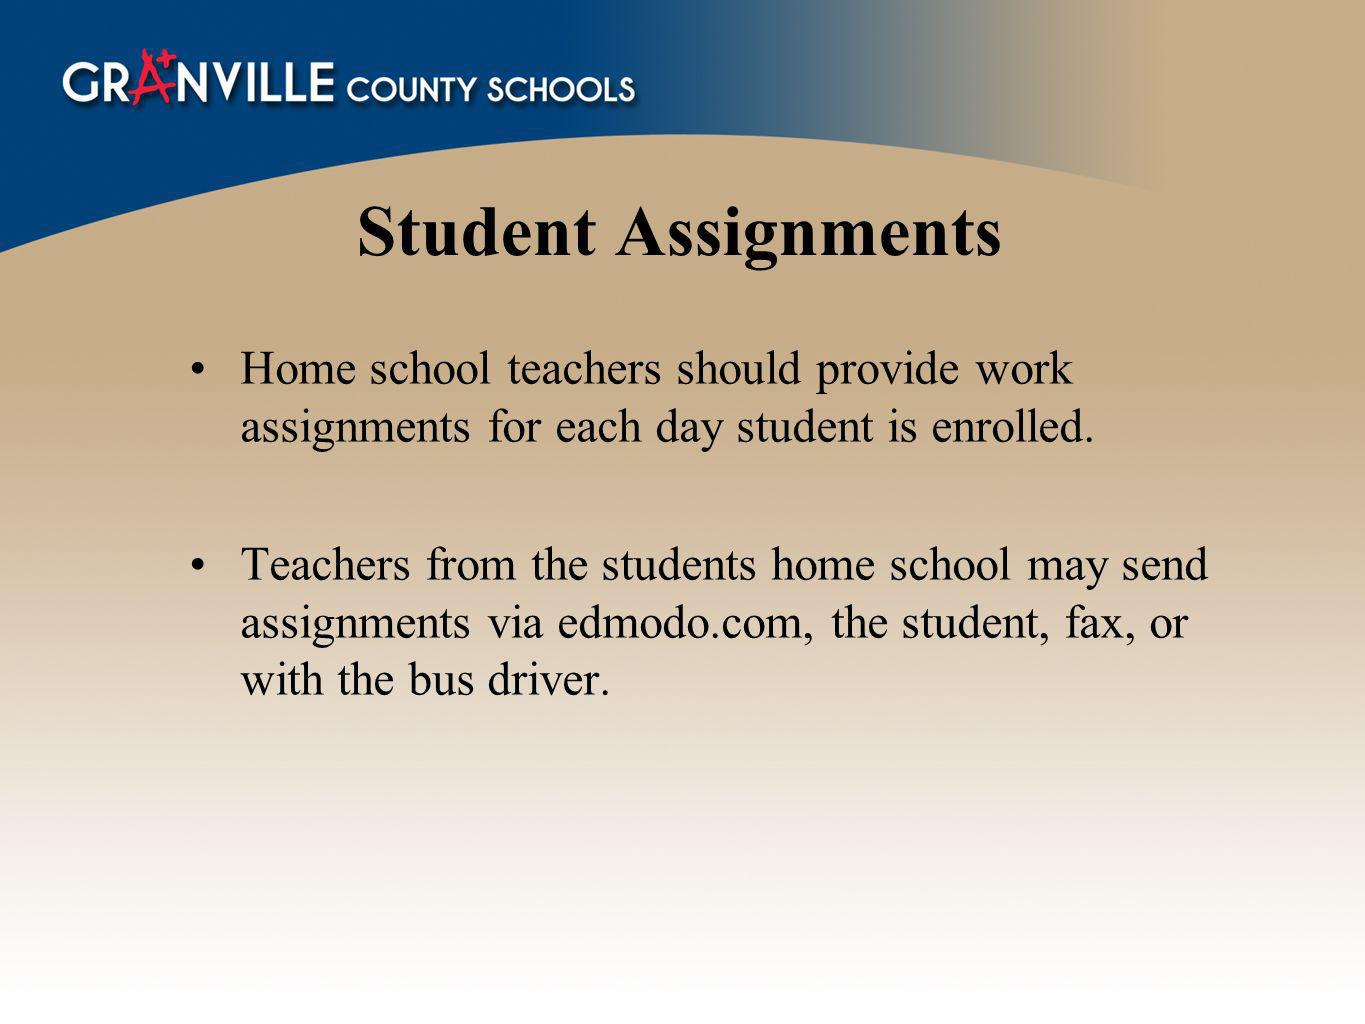 Student Assignments Home school teachers should provide work assignments for each day student is enrolled.